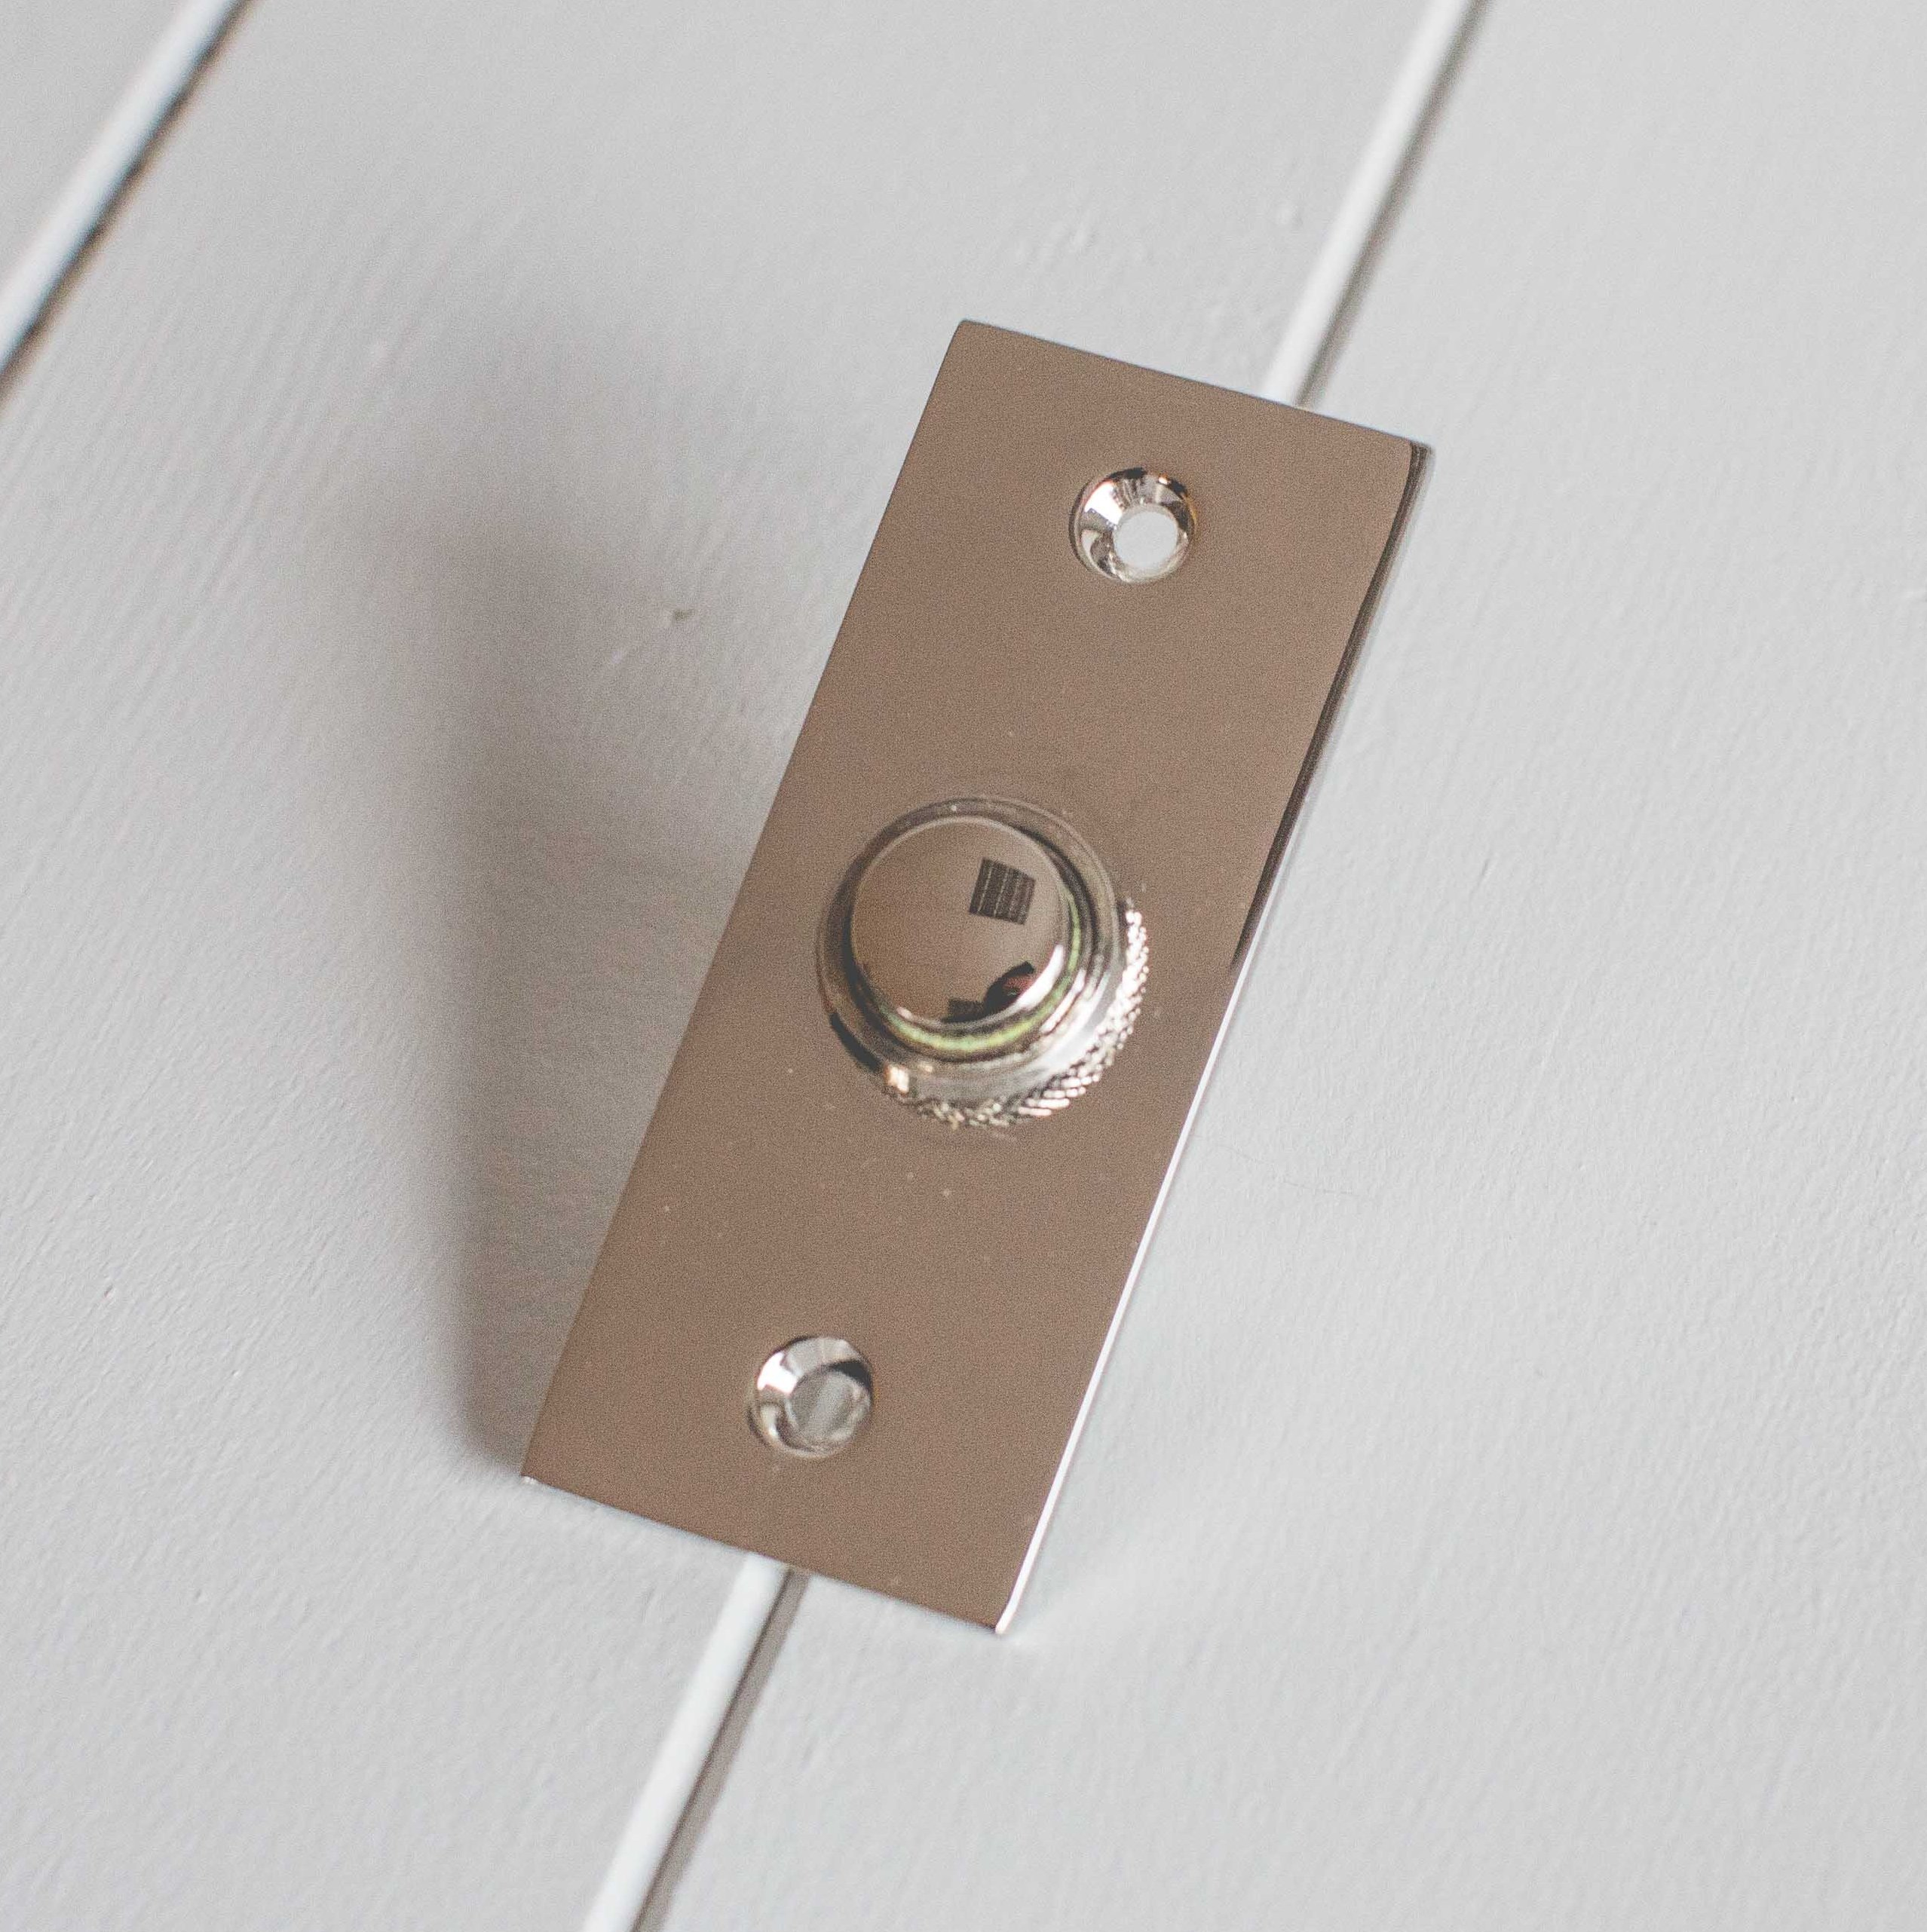 Rectangular Bell Push- Polished Nickel